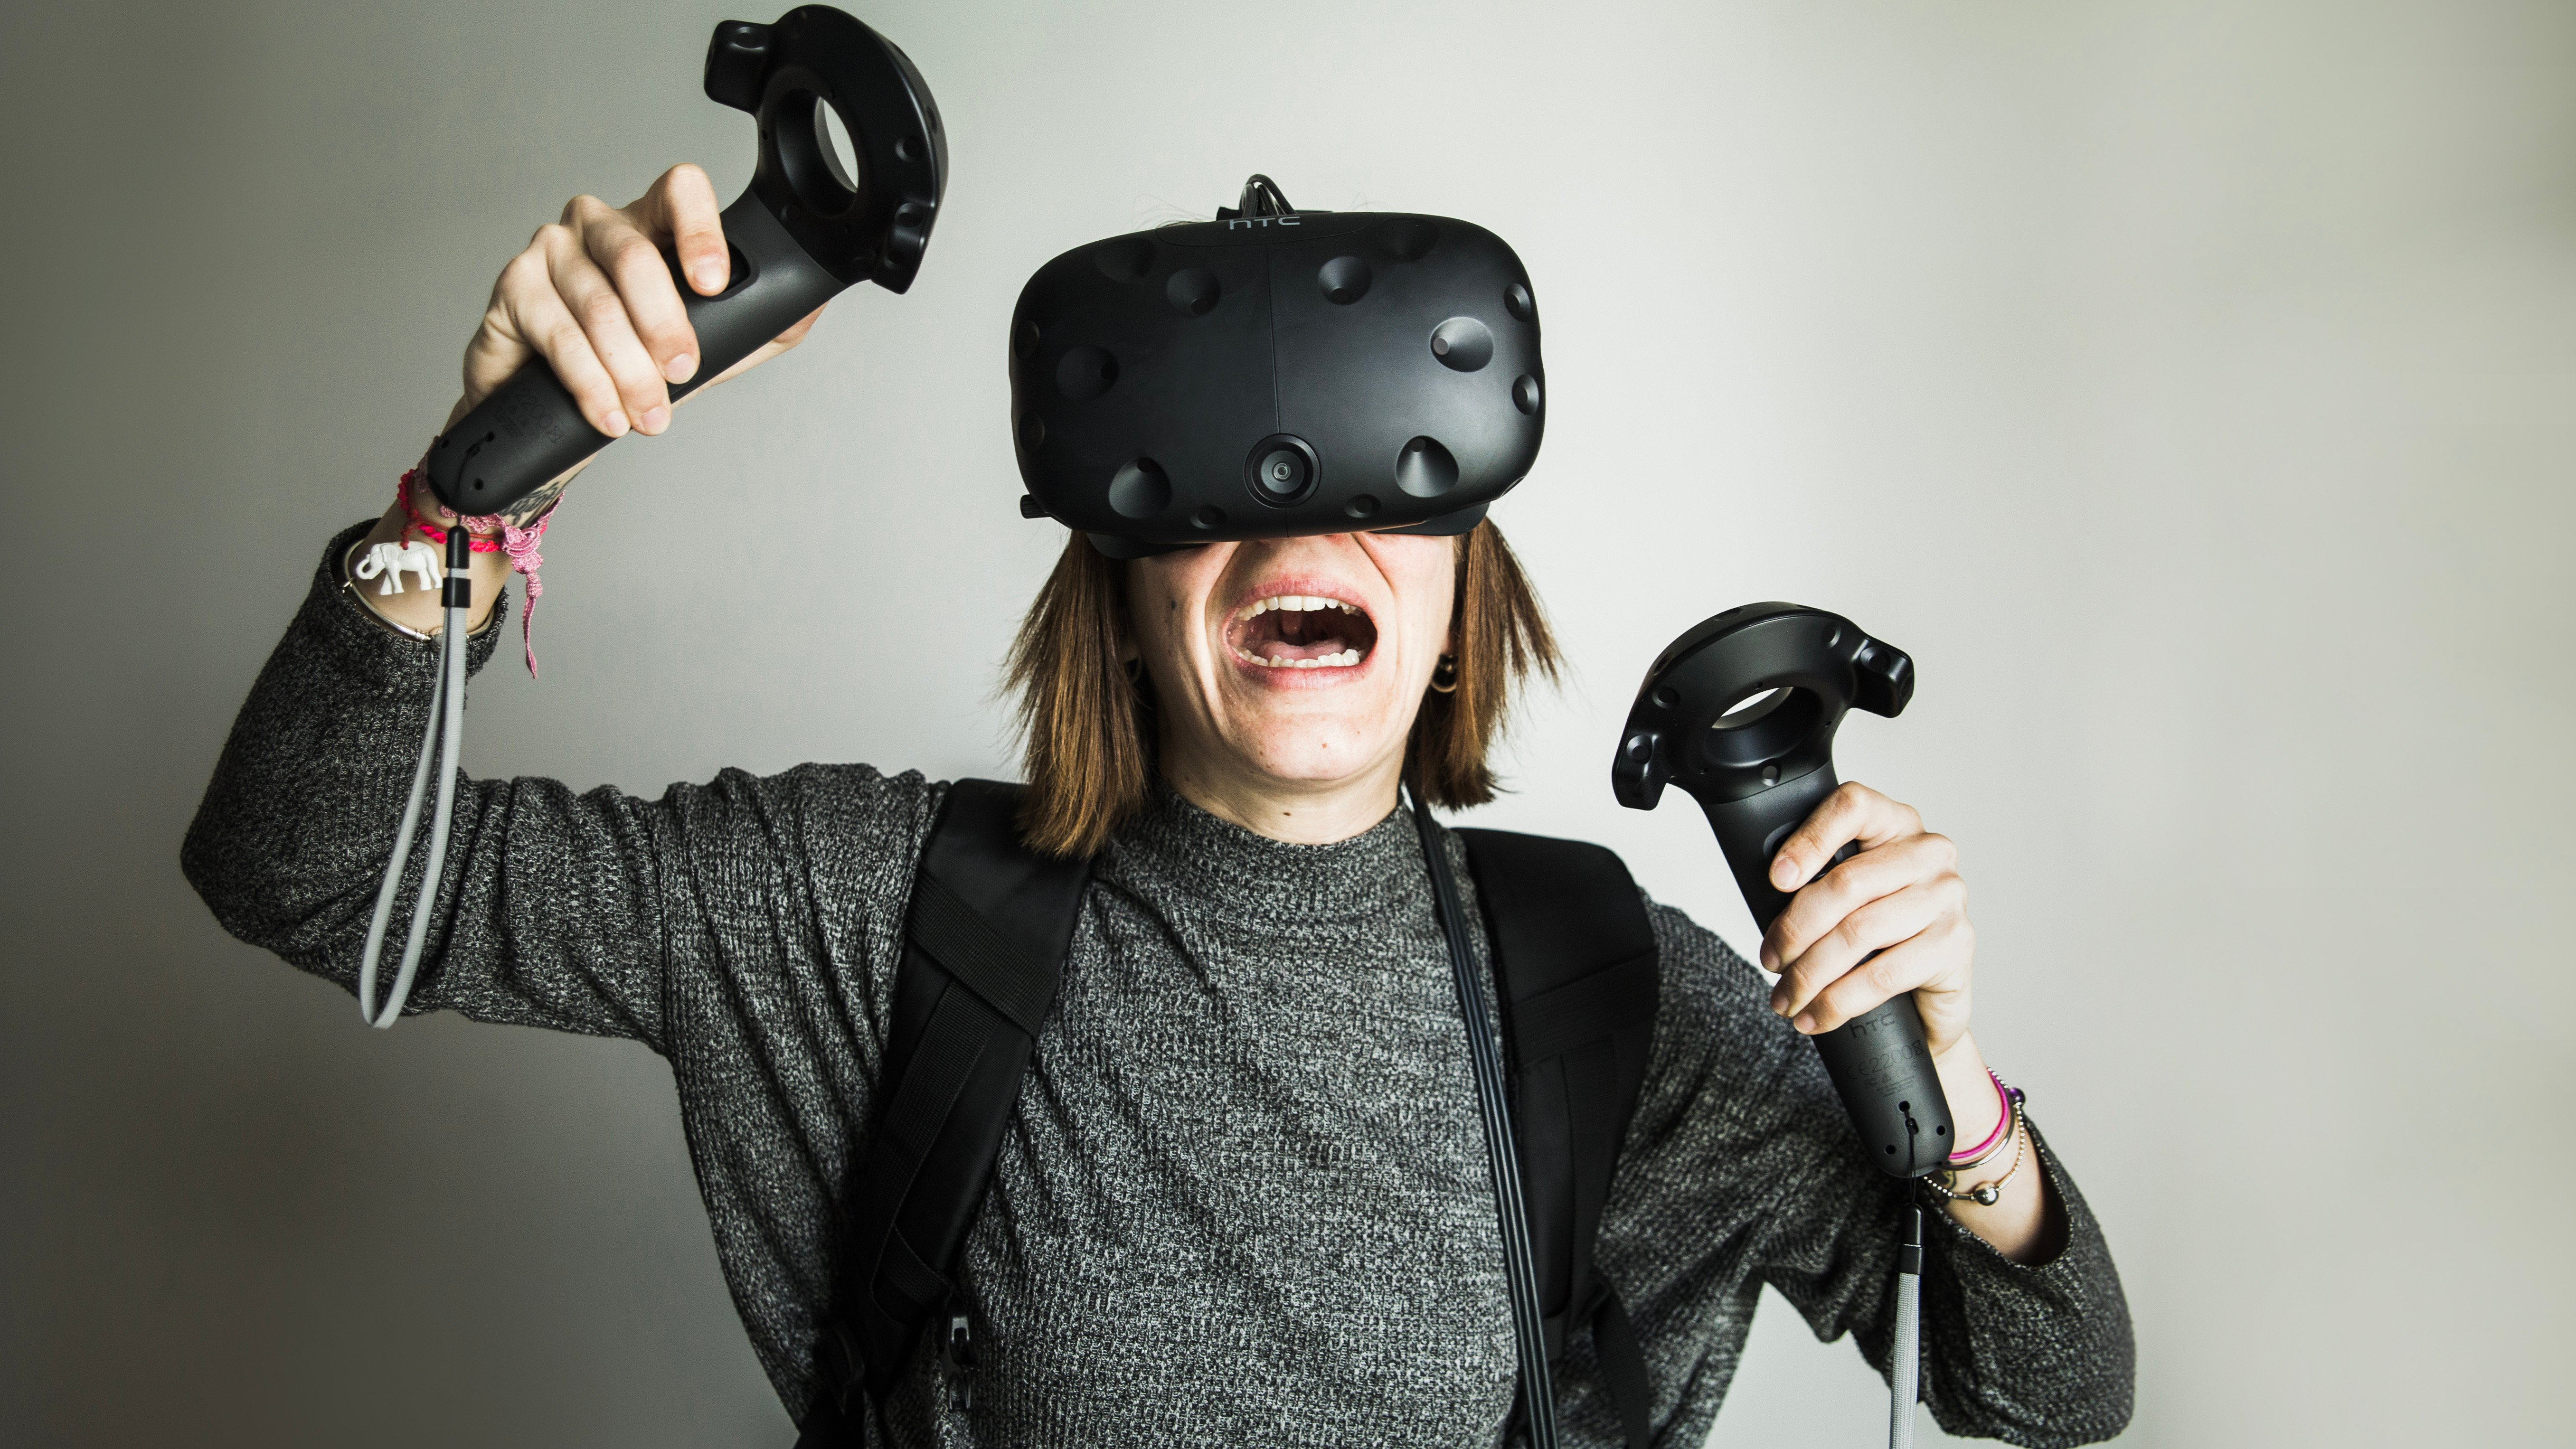 AndroidPIT htc vive hands on 3586 Virtual Reality Explained: HTC Vive